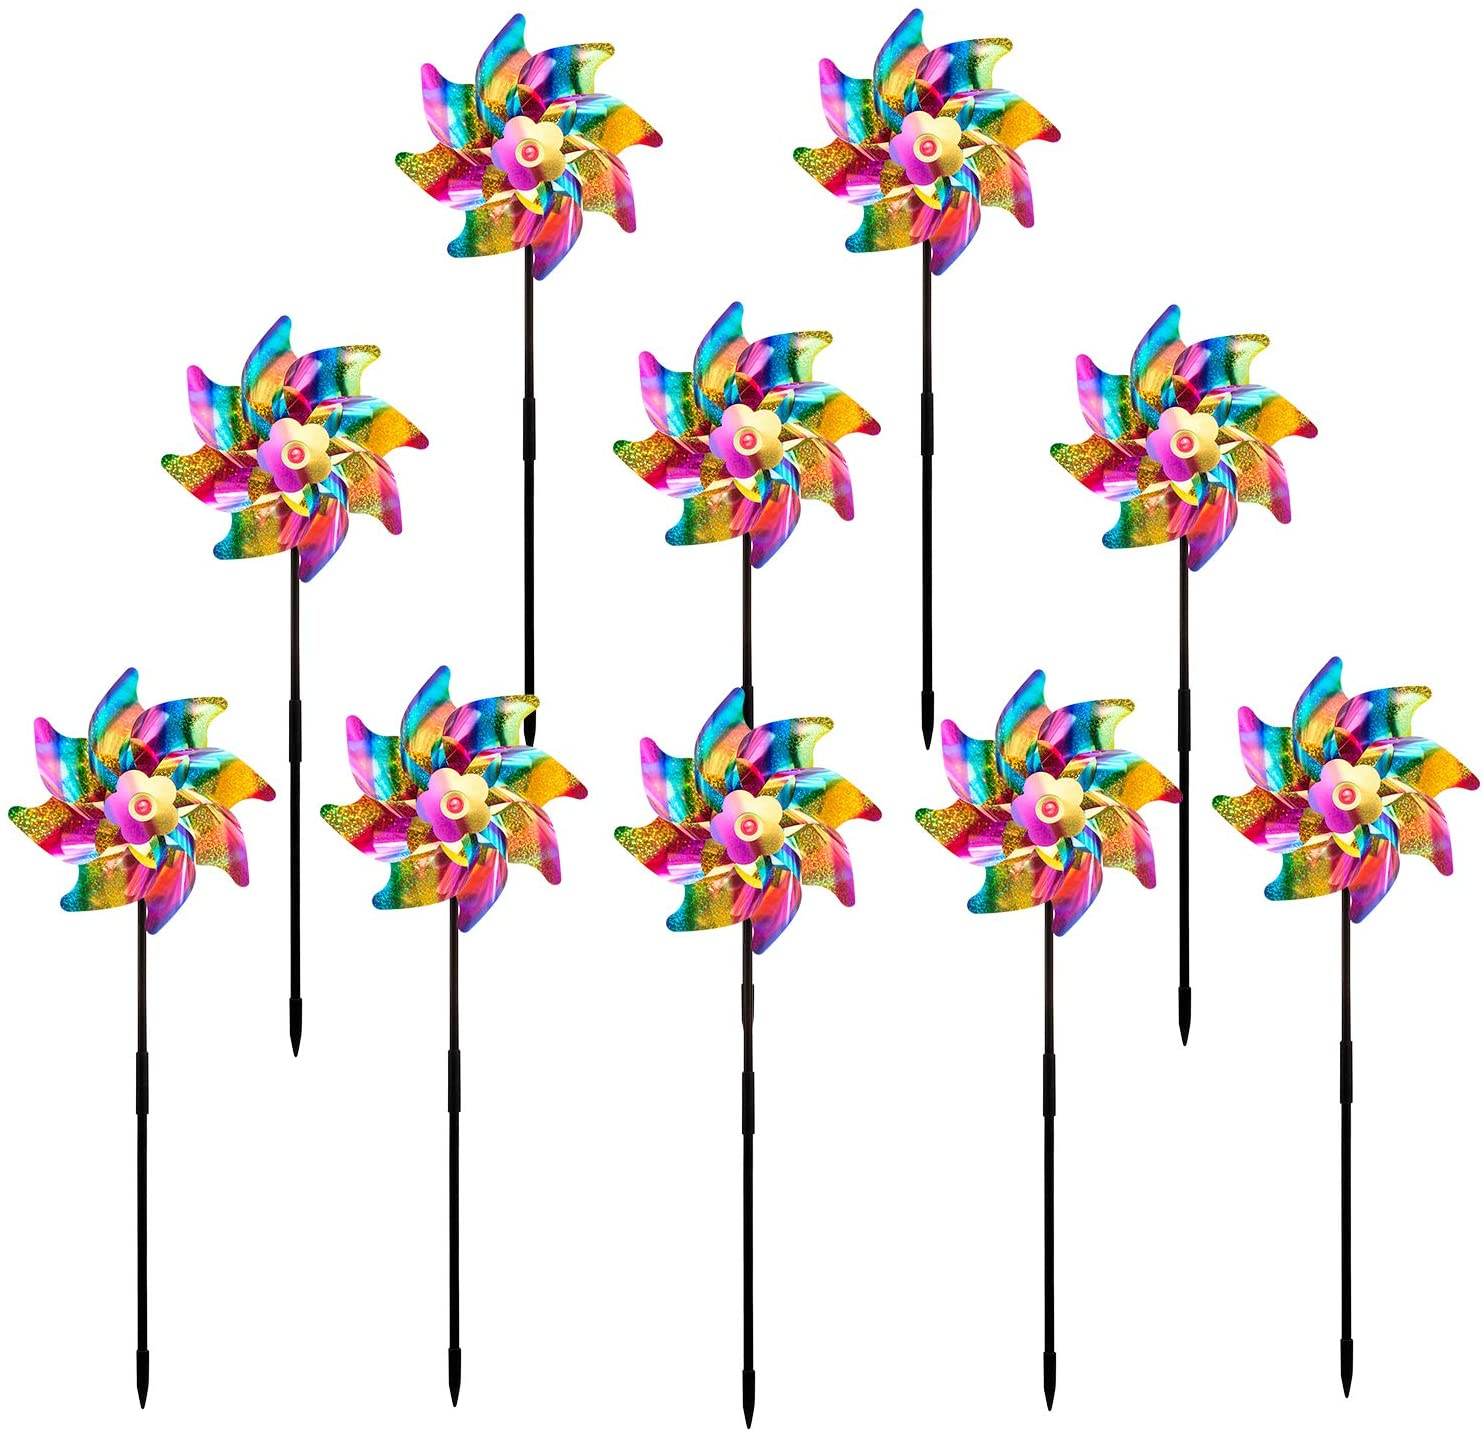 Sparkly Holographic Rainbow Pinwheel Reflective Colorful Whirl Pinwheels Spinners Windmill Bright Blended Rainbow Design DIY Set for Kids Adult Garden Orchard Lawn Farm Beach Decor (Set of 10)